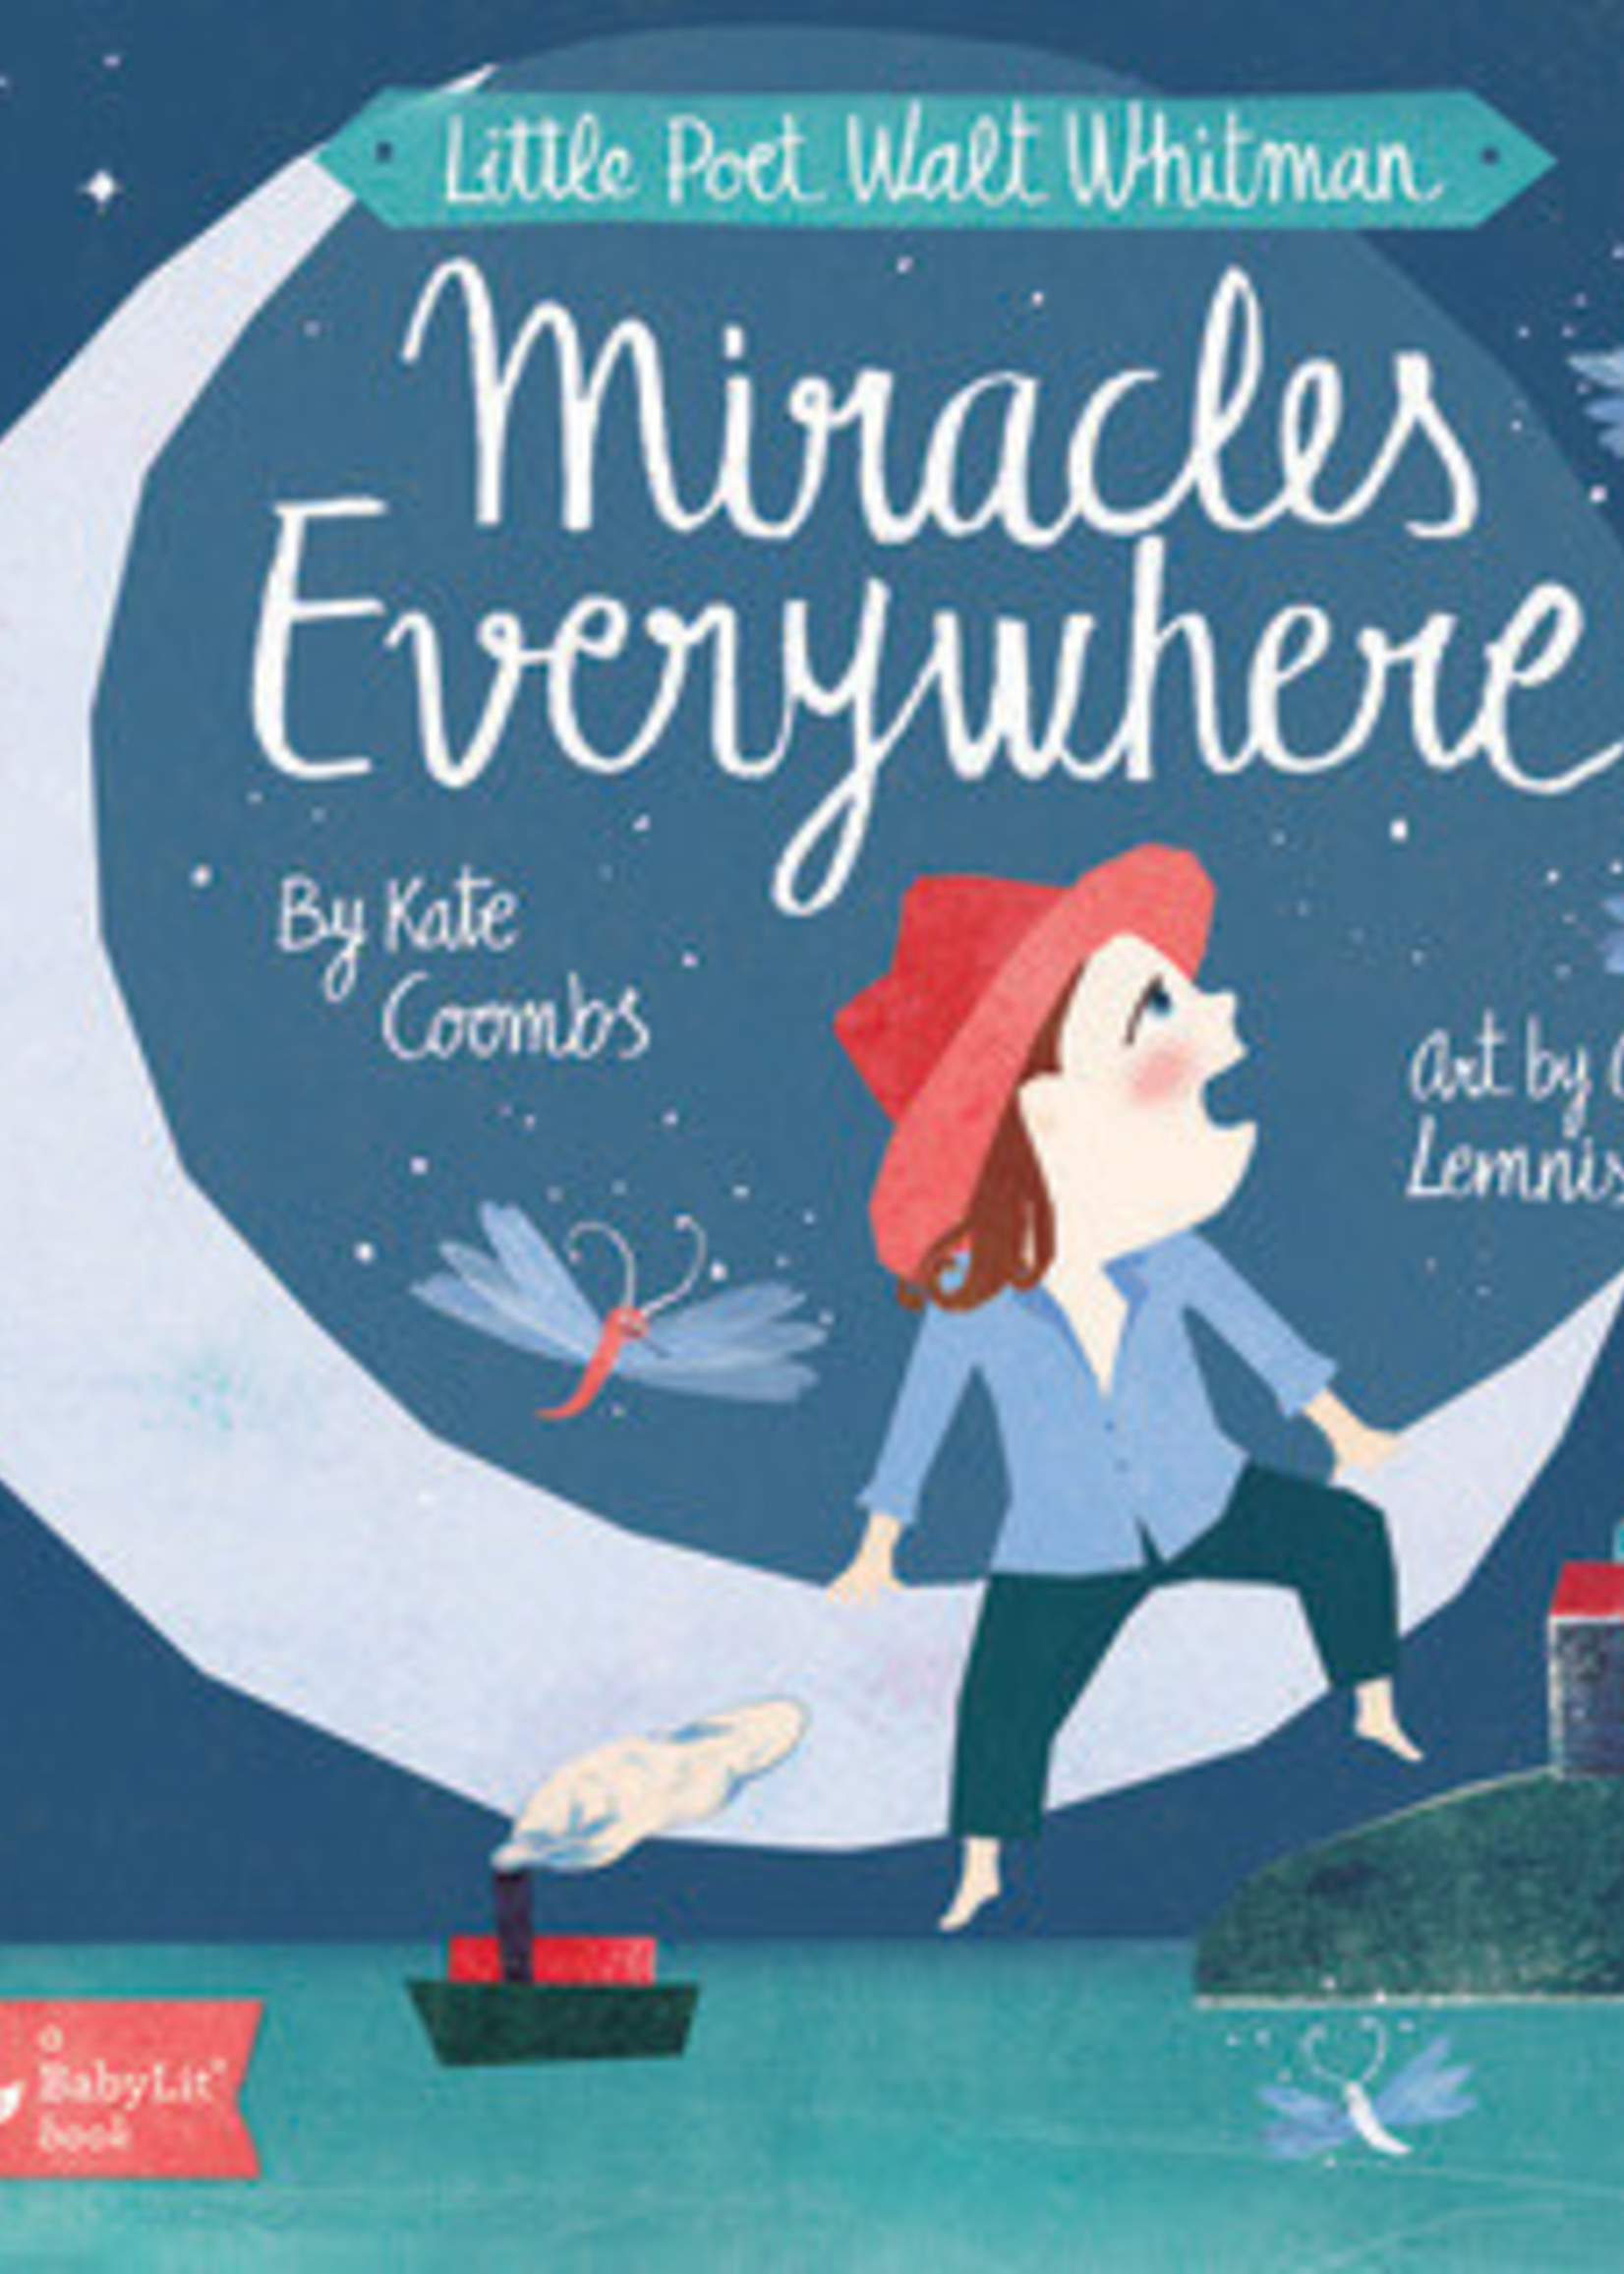 Little Poet Walt Whitman: Miracles Every by Kate Coombs,  Carme Lemniscates